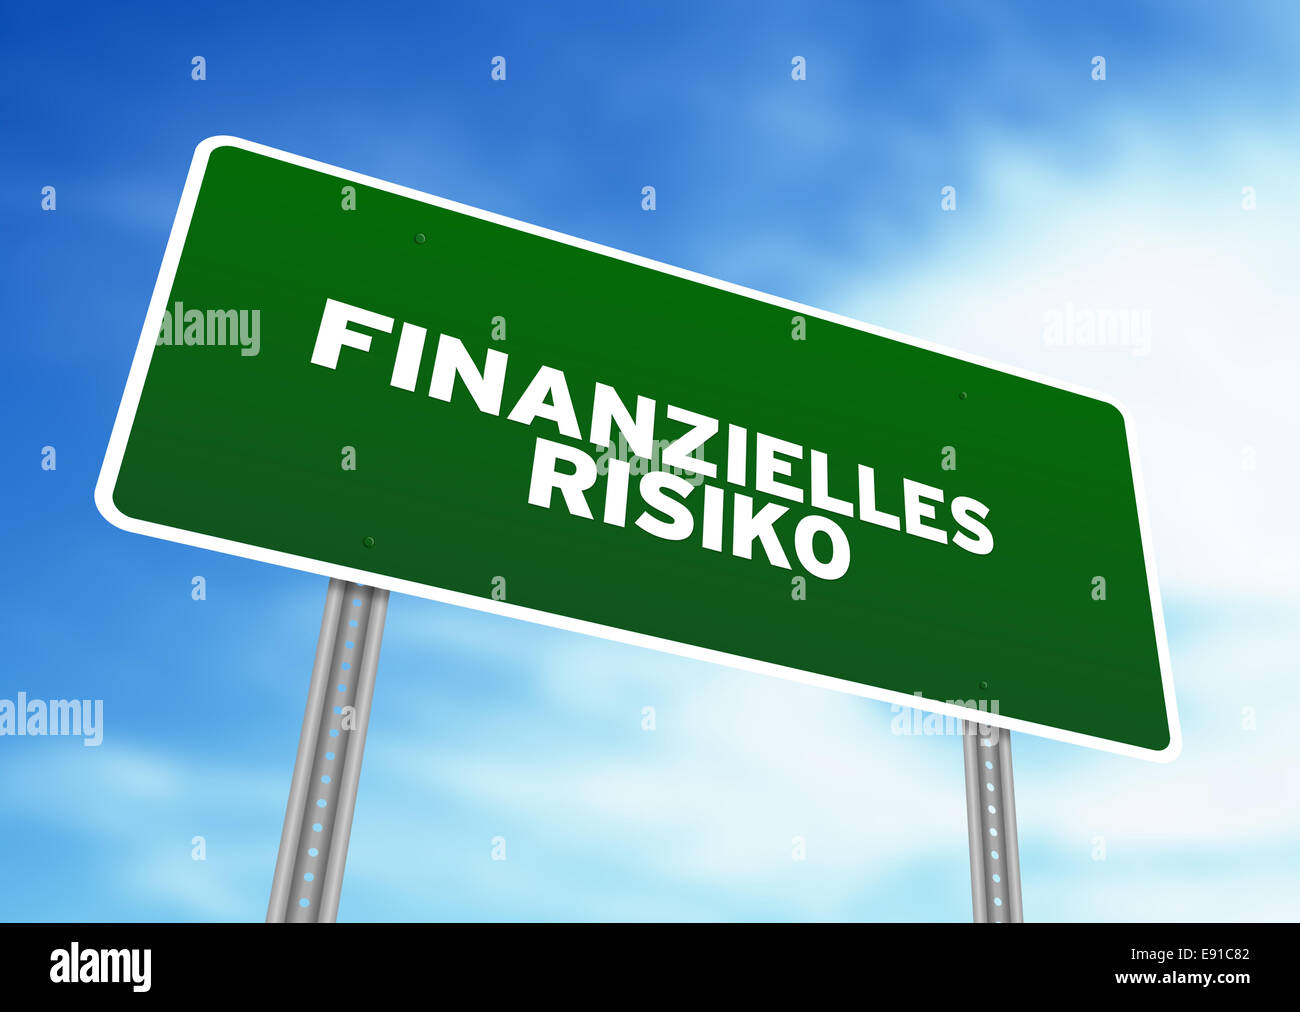 Financial Risk Highway Sign - Stock Image